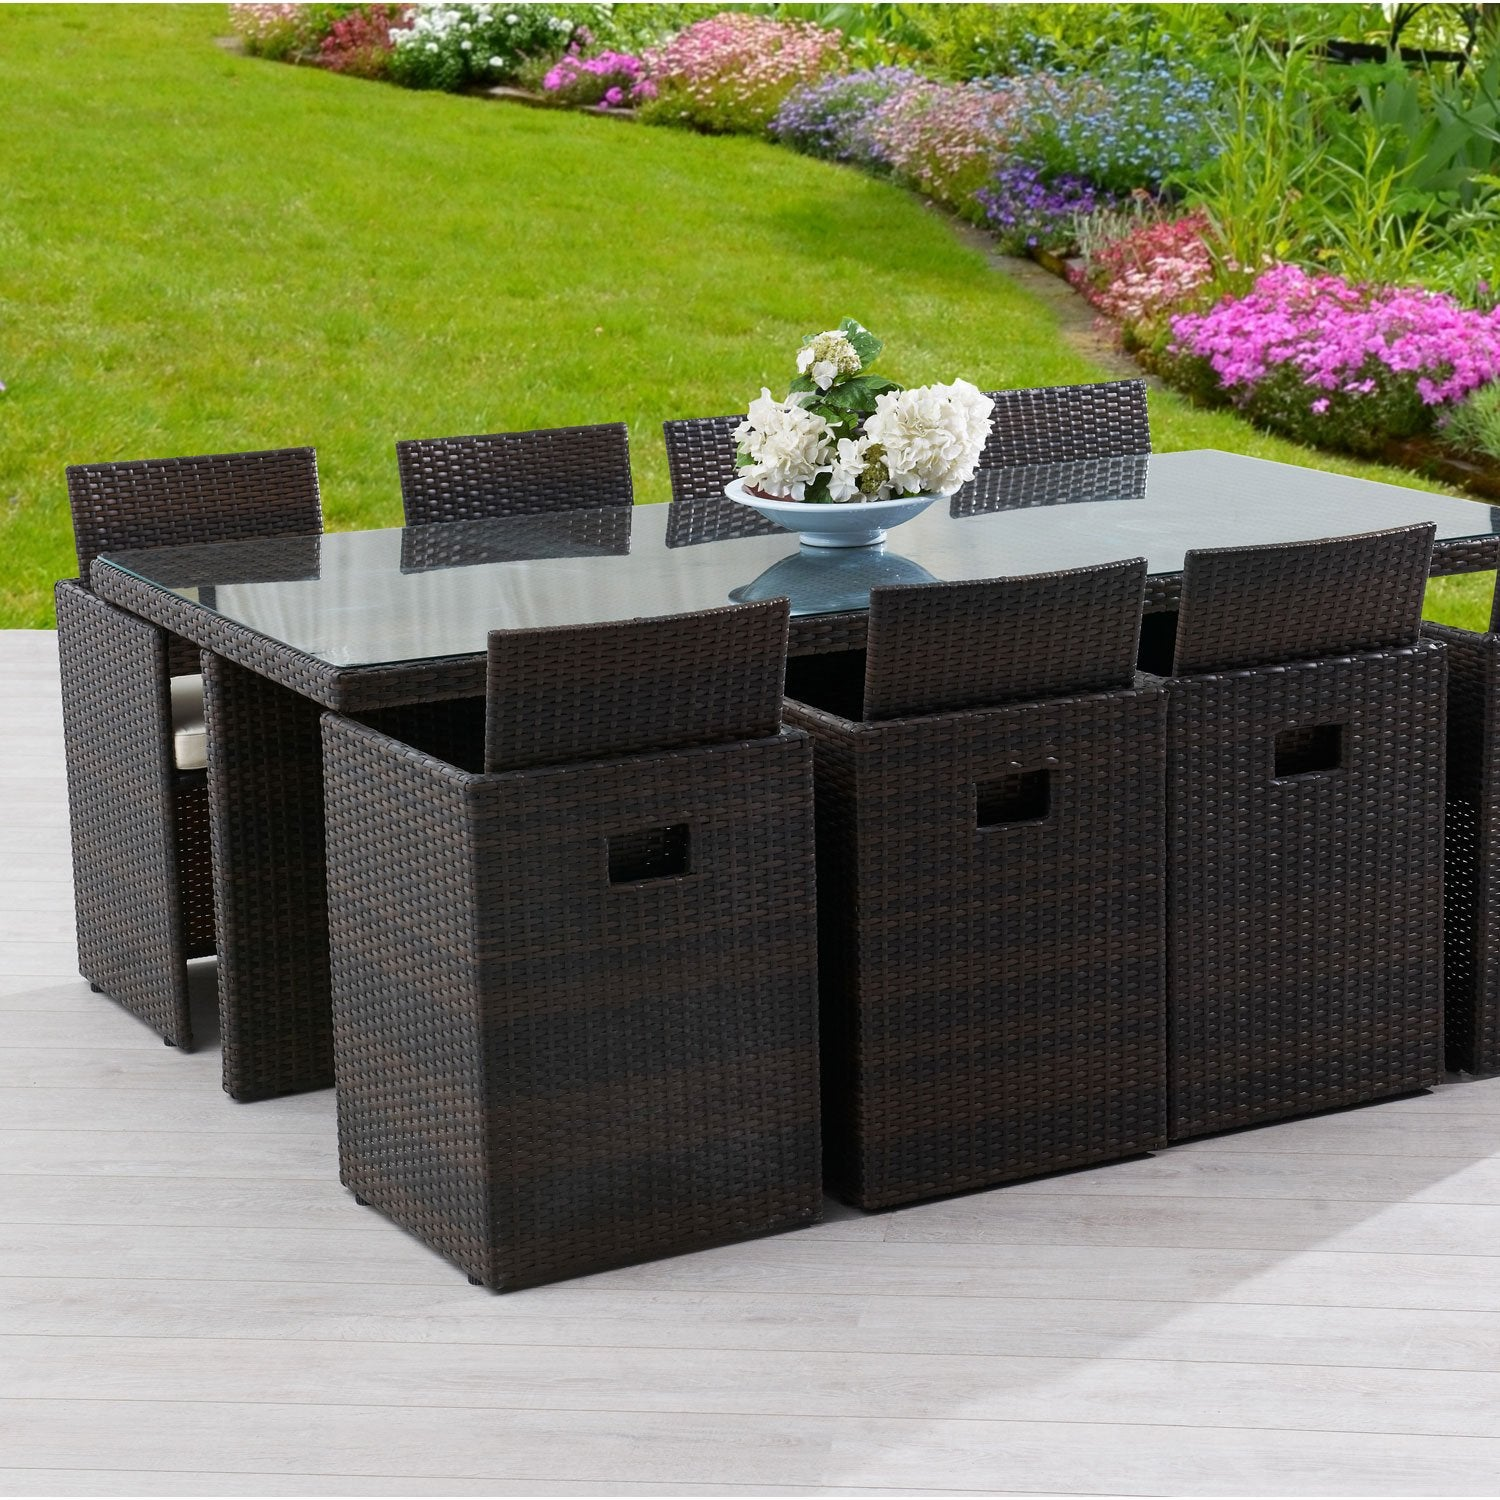 Salon de jardin encastrable r sine tress e marron 1 table for Salon jardin resine tressee carrefour